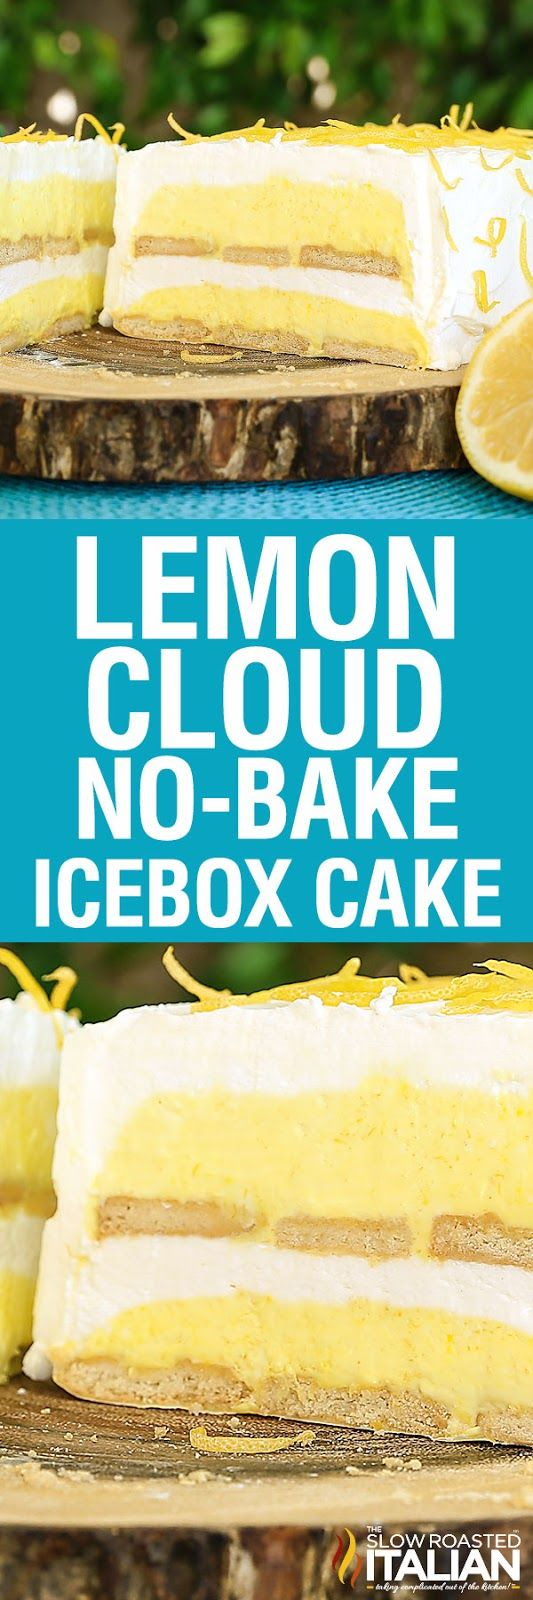 Lemon Cloud No-Bake Ice Box Cake is a fun twist on a classic recipe. This cake is light, bright and utterly luscious. It is bursting with lemon flavor and is prepped in just 25 minutes. With layer upon layer of scrumptious flavors, this is your go to cake this summer. Perfection without ever turning the oven on.